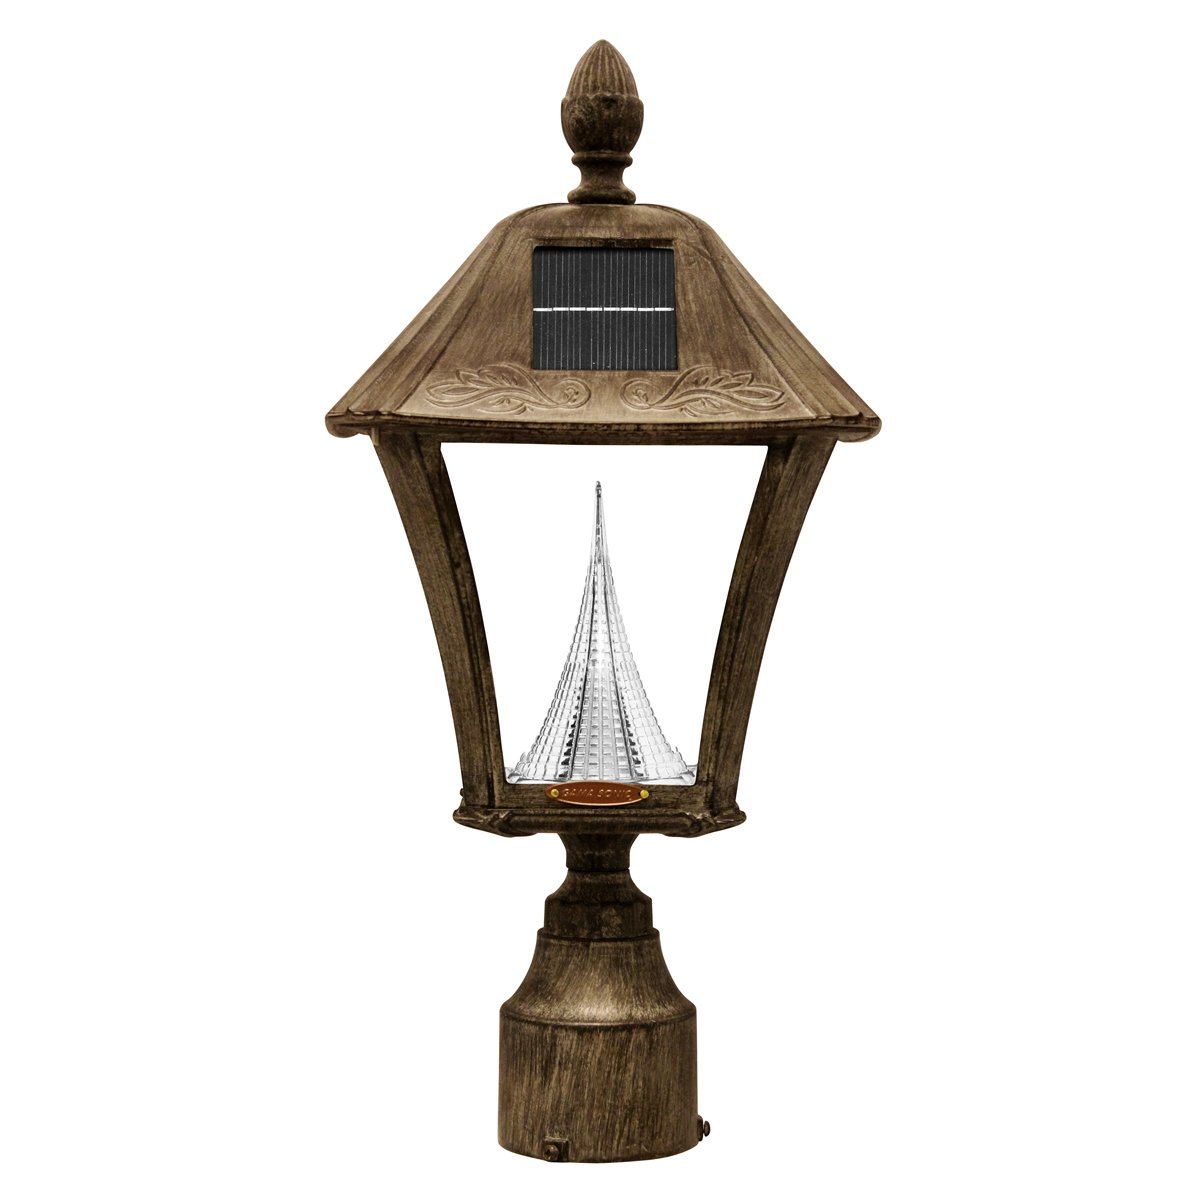 Gama Sonic Baytown Solar Outdoor LED Light Fixture, 3-Inch Fitter for Post Mount, Weathered Bronze Finish #GS-106F-WB